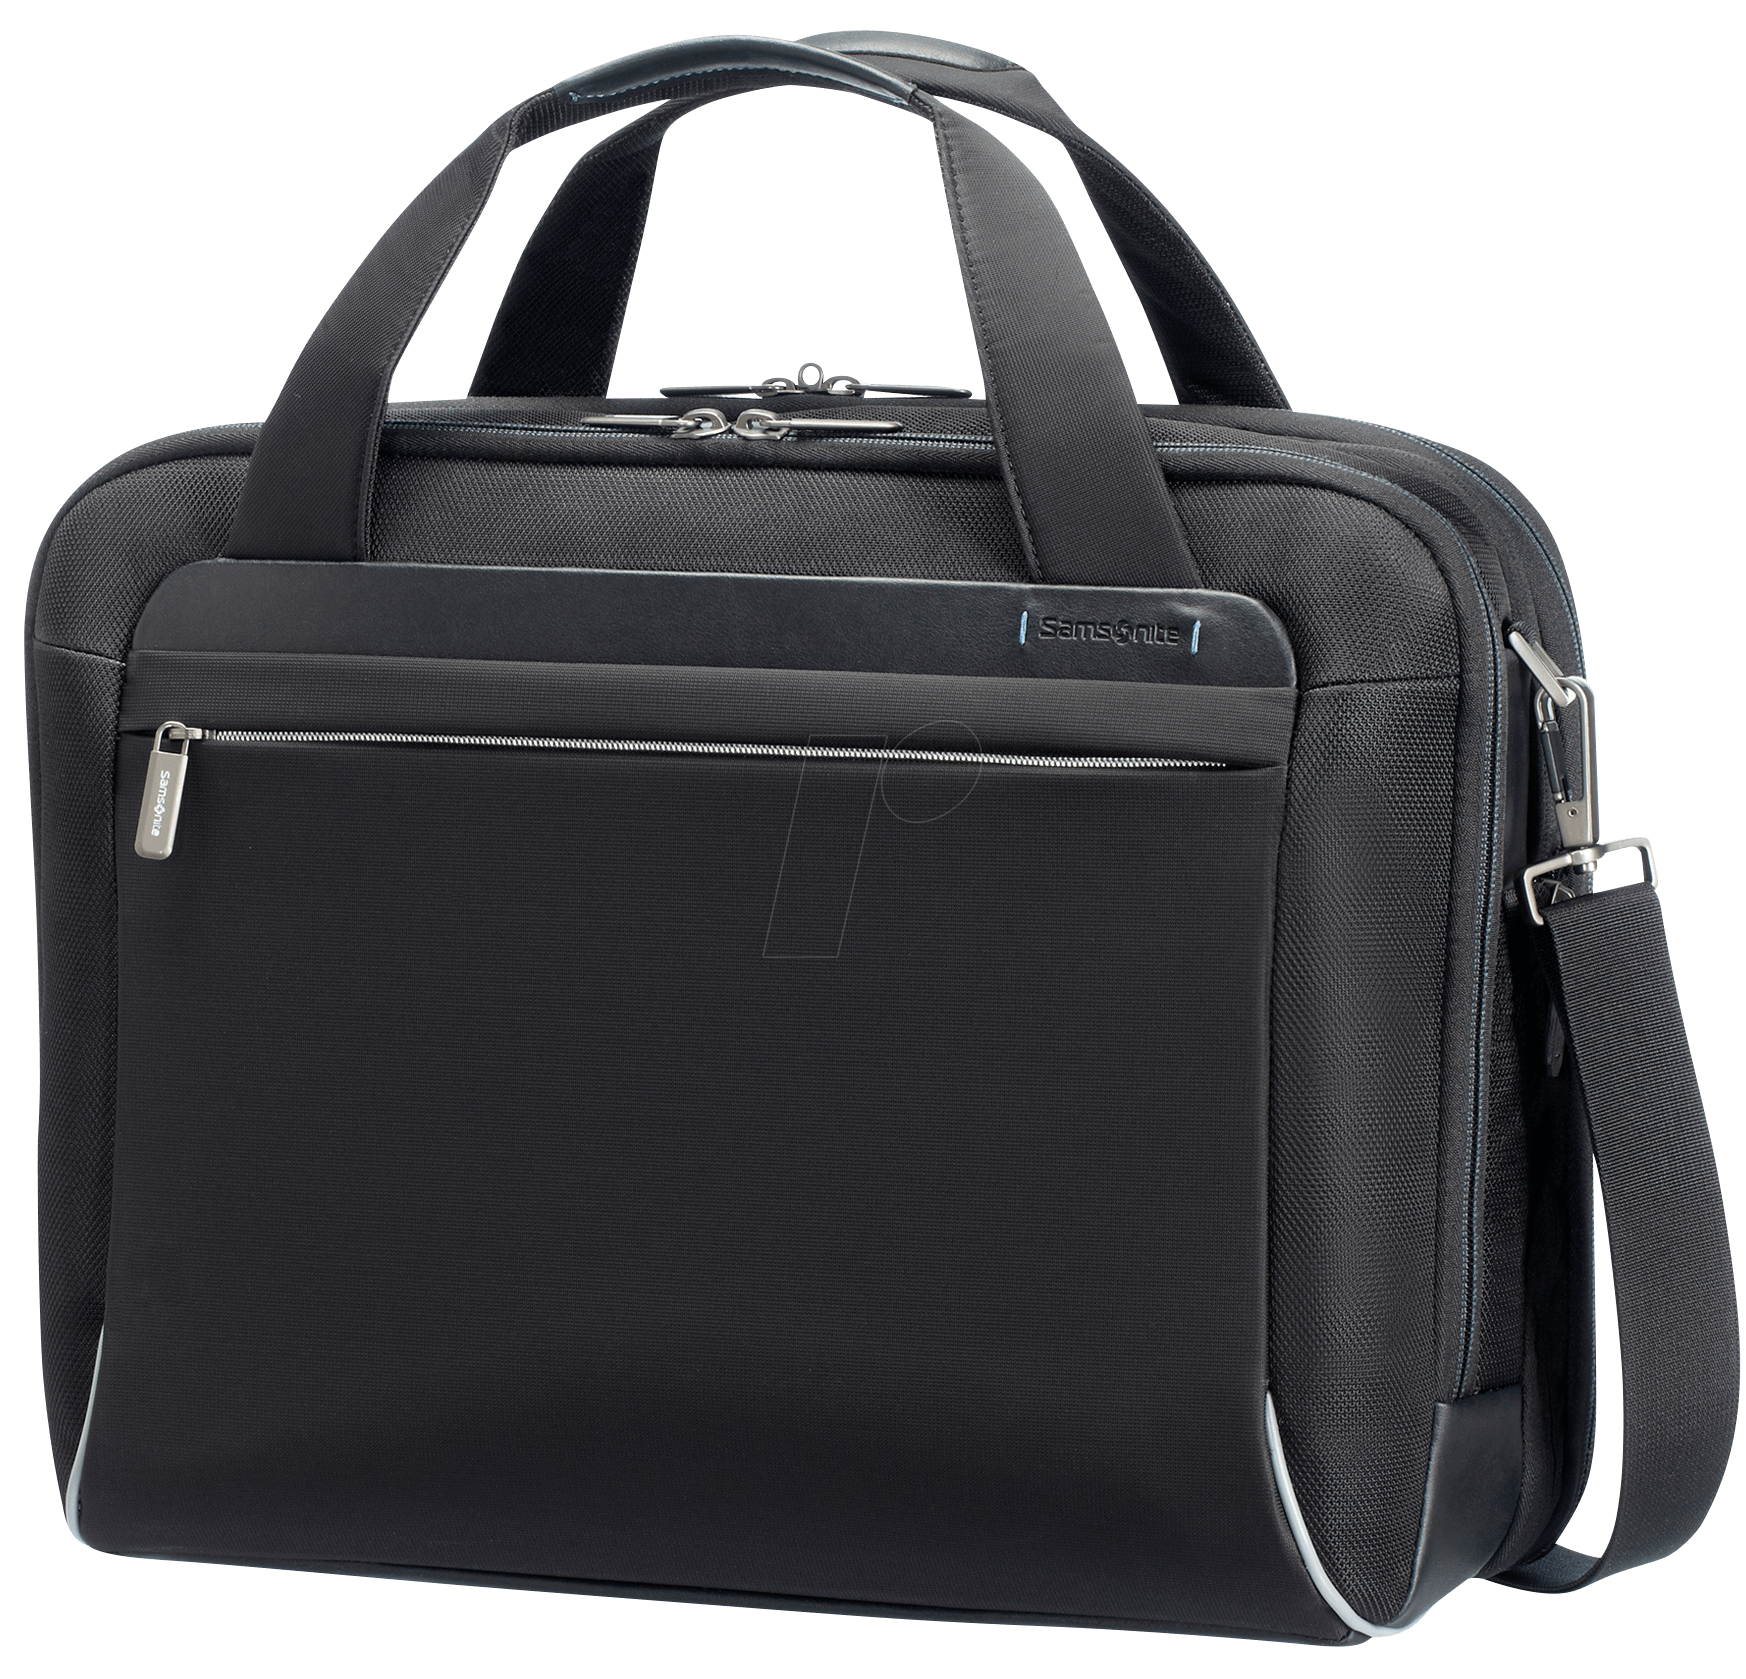 SAMSONITE55692 - Laptop, Tasche, Spectrolite, 1...